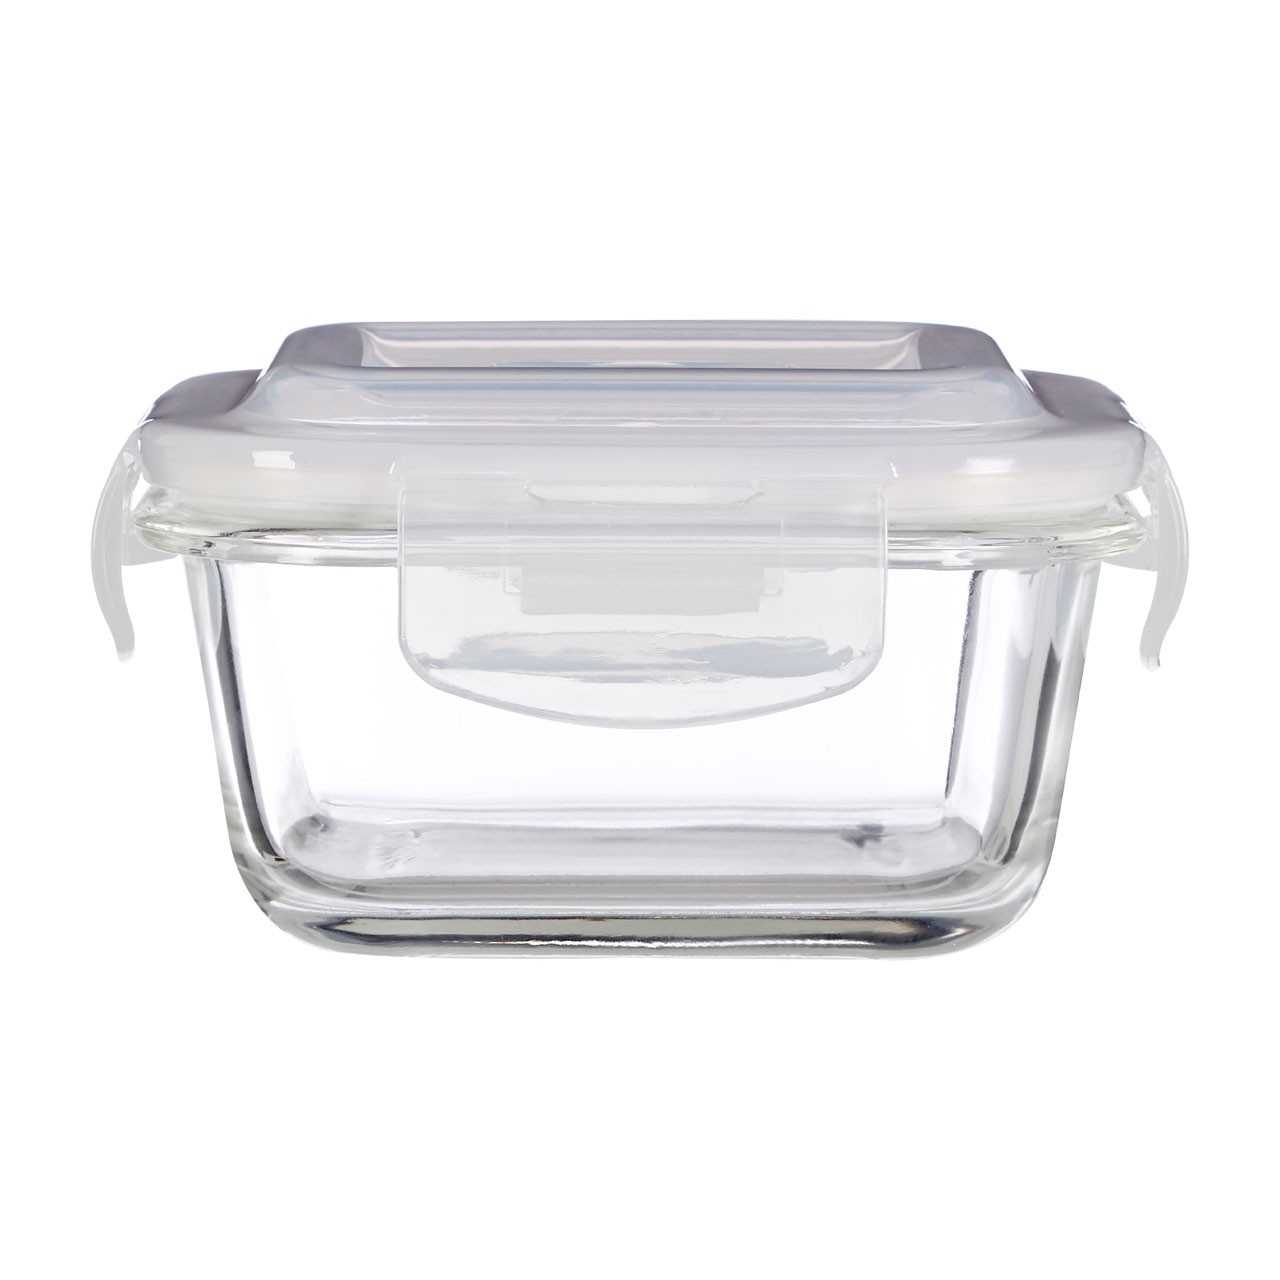 Prime Furnishing Freska Glass Container, Clear, 320 ml